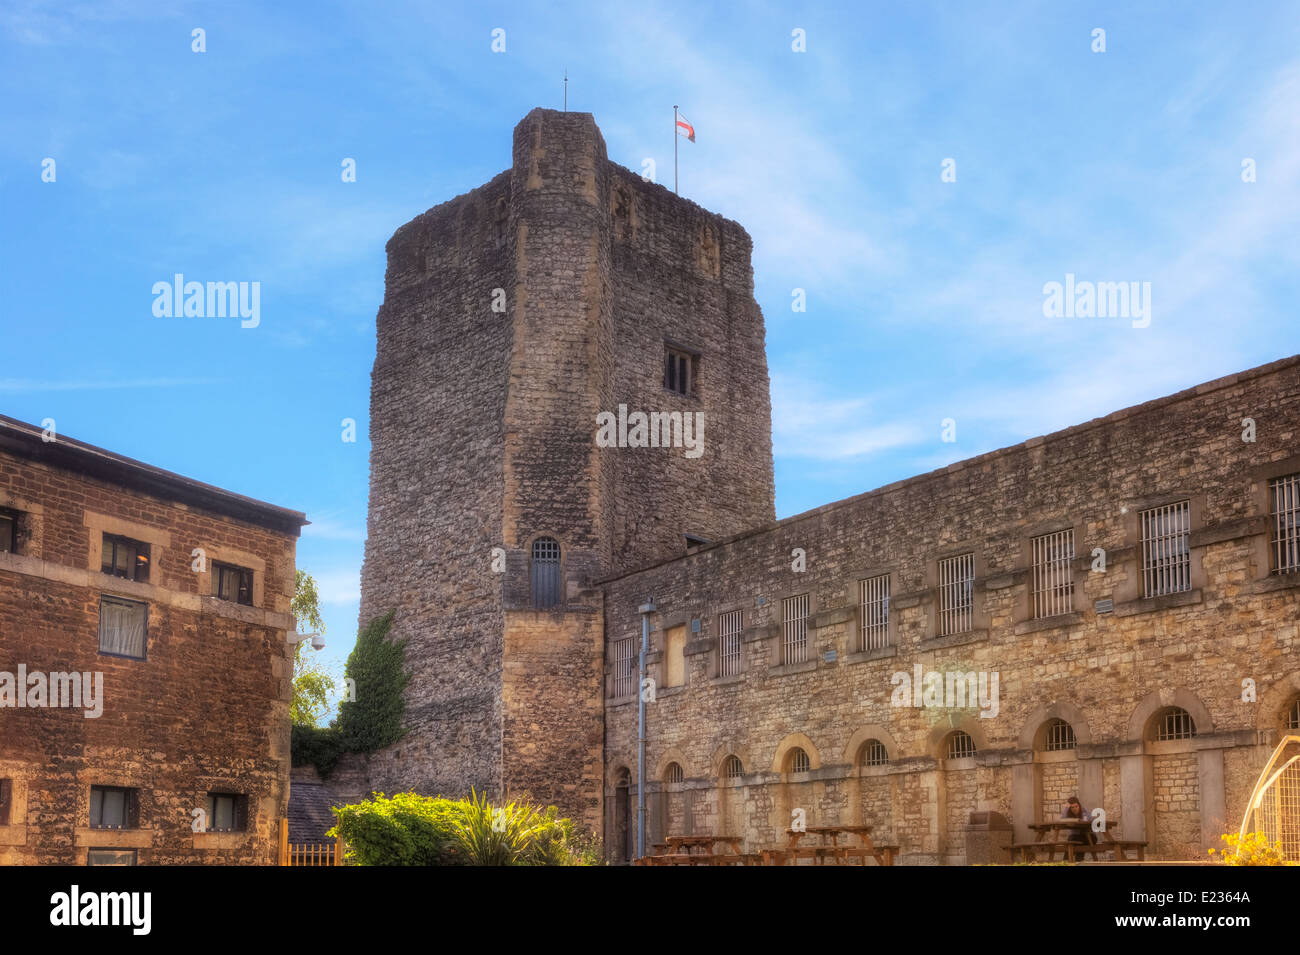 Oxford Castle, Oxford, Oxfordshire, England, United Kingdom - Stock Image